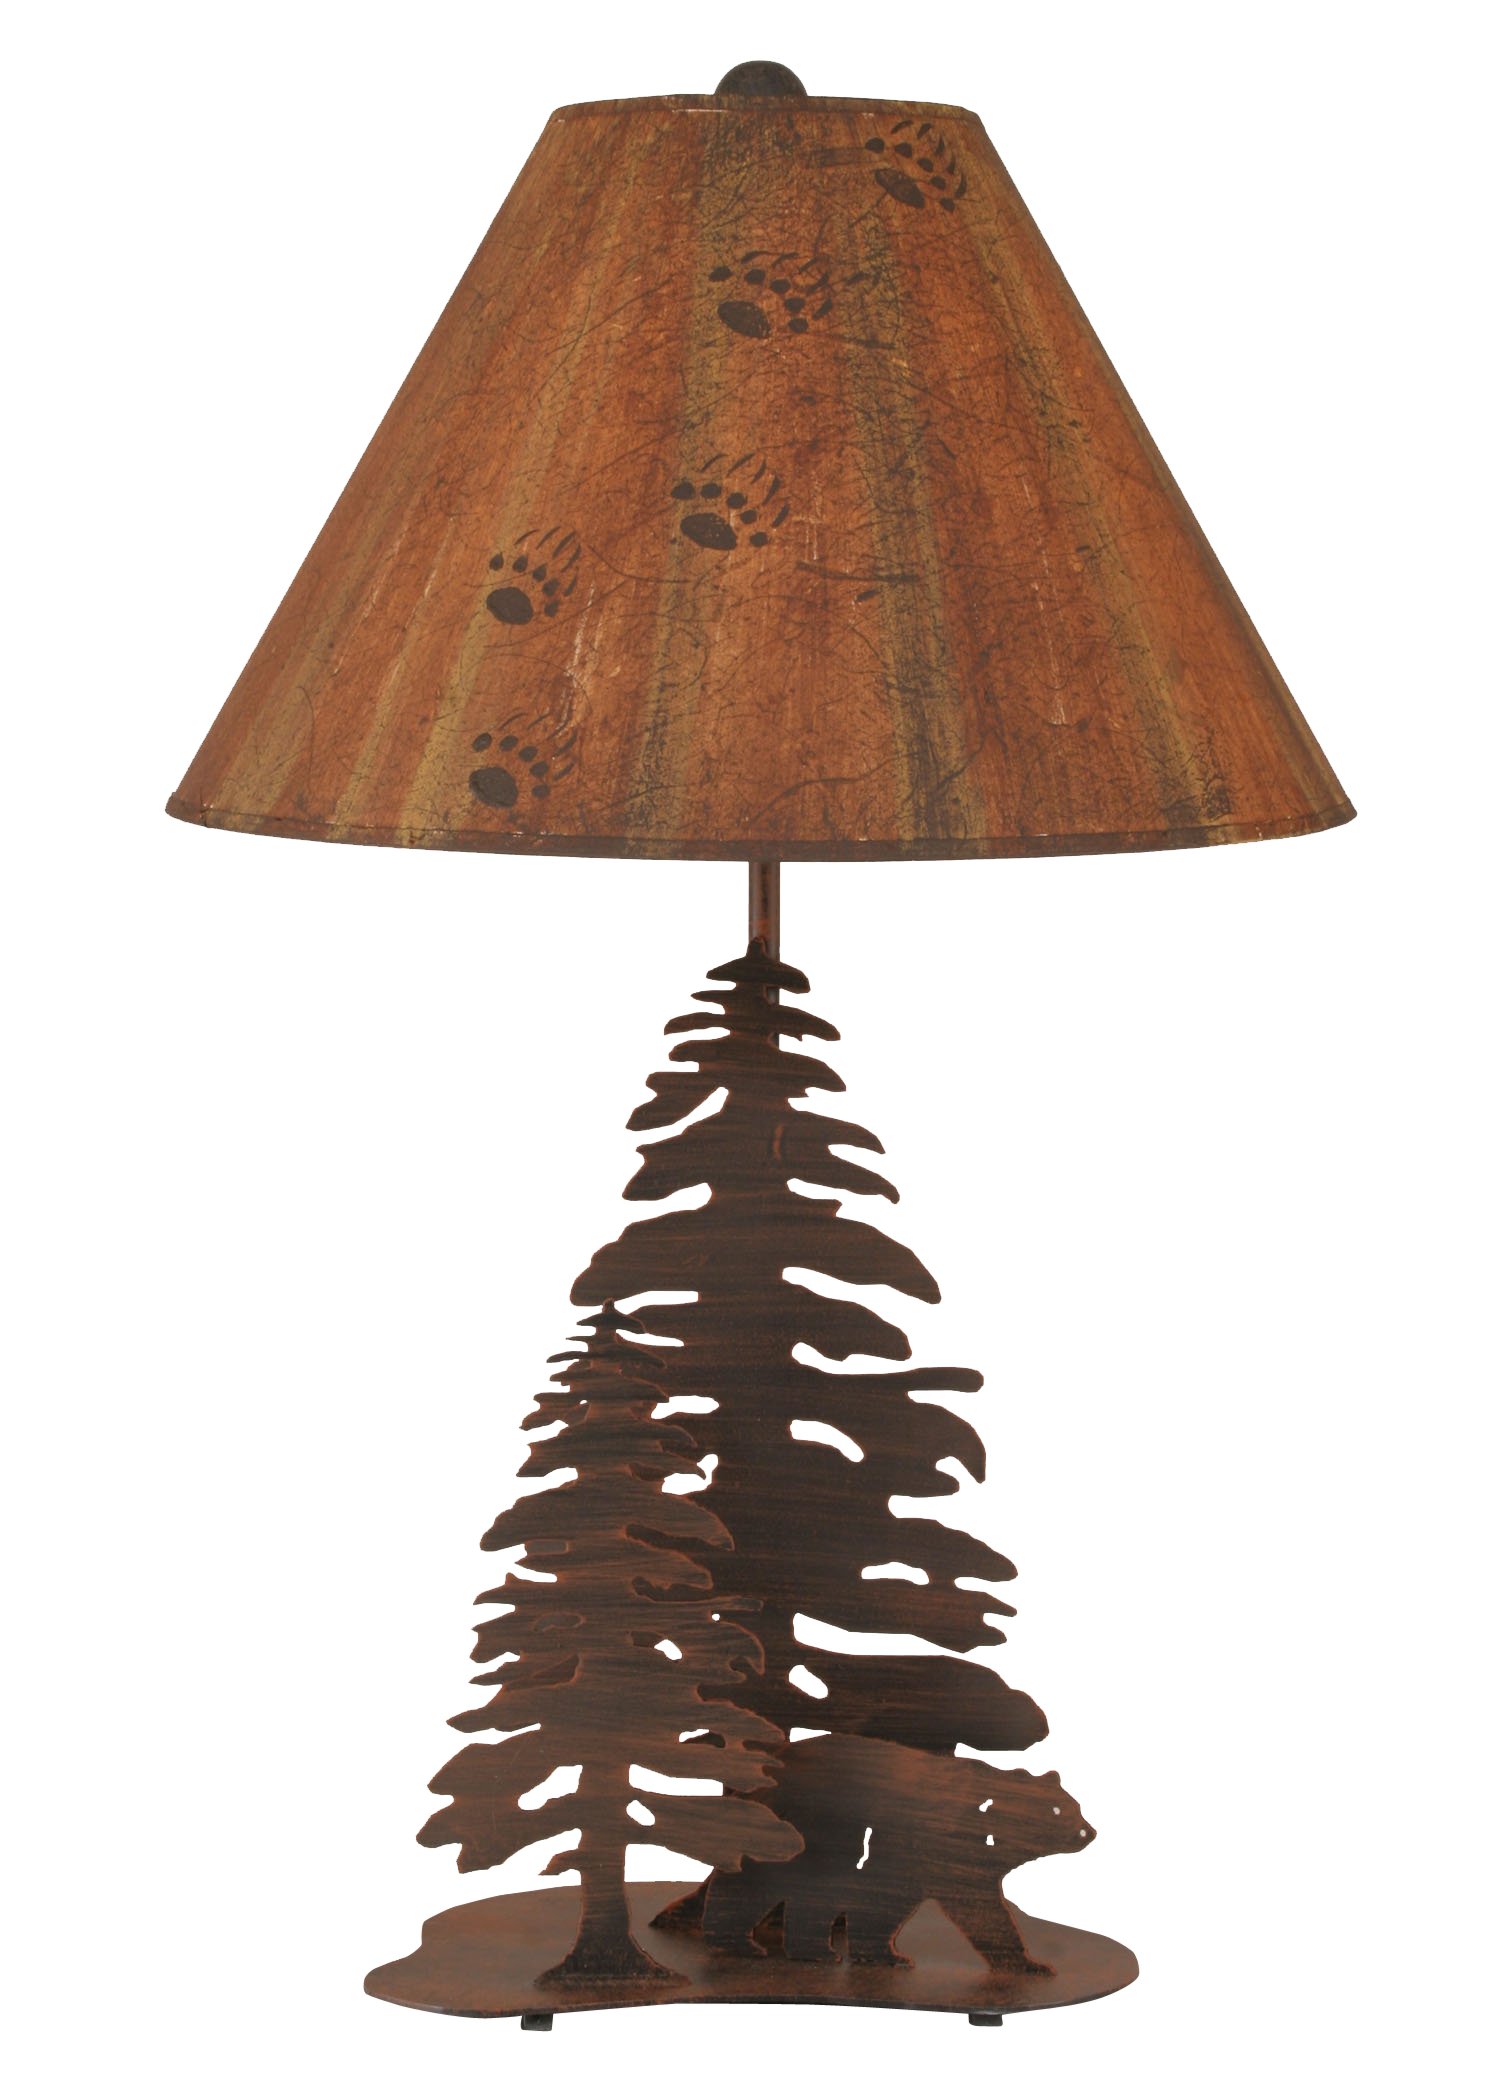 Burnt Sienna 2 Tree and Bear Table Lamp - Coast Lamp Shop